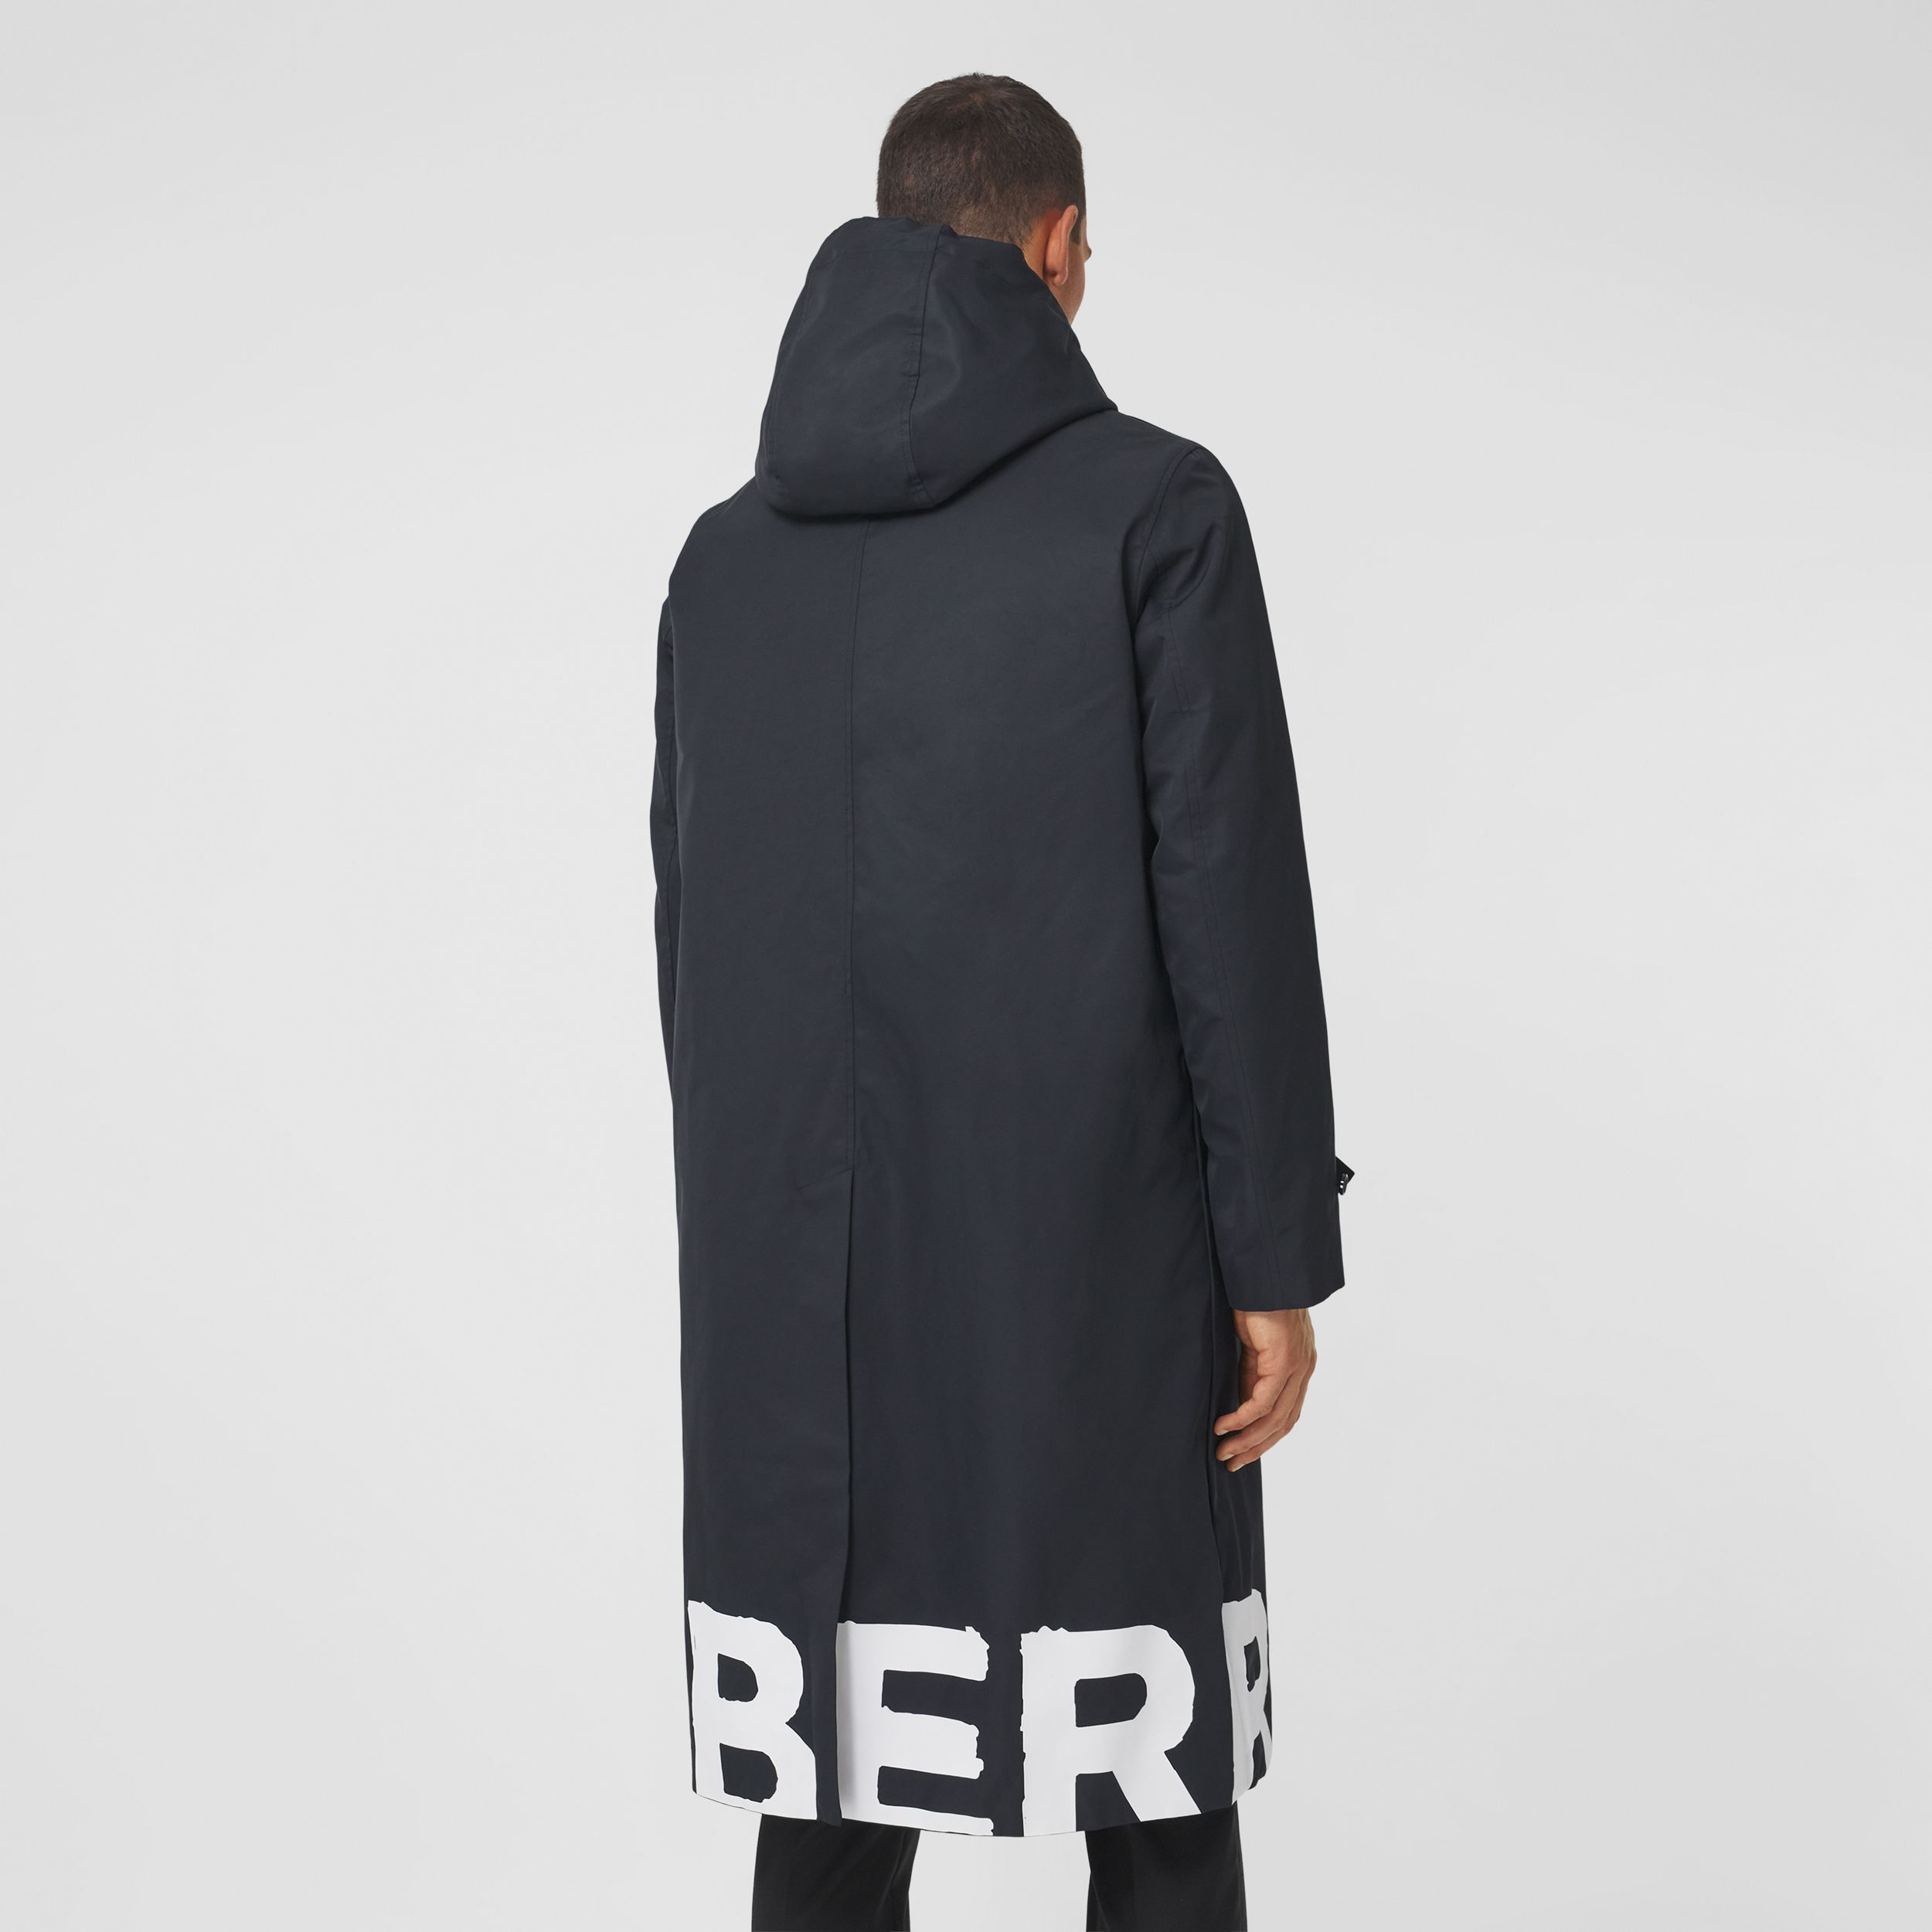 Logo Print Nylon Car Coat in Black - Men | Burberry - 3